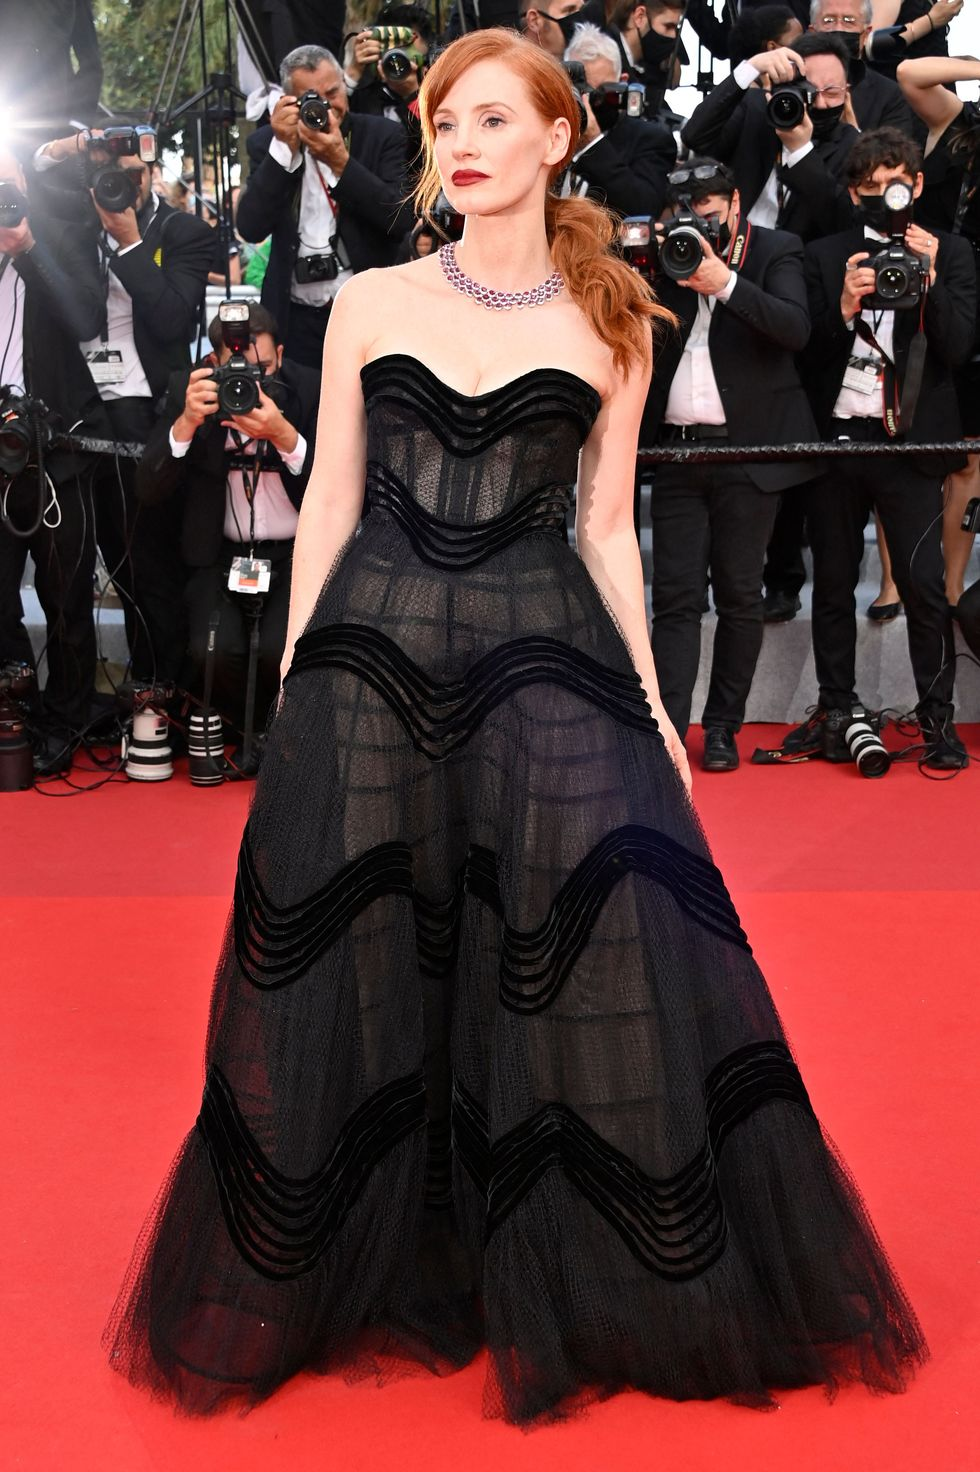 Jessica Chastain Jessica Chastain famously walked the red carpet at the 2021 Cannes Film Festival opening ceremony, which also saw the premiere of Annette, wearing a strapless black Dior dress and Chopard jewelry.